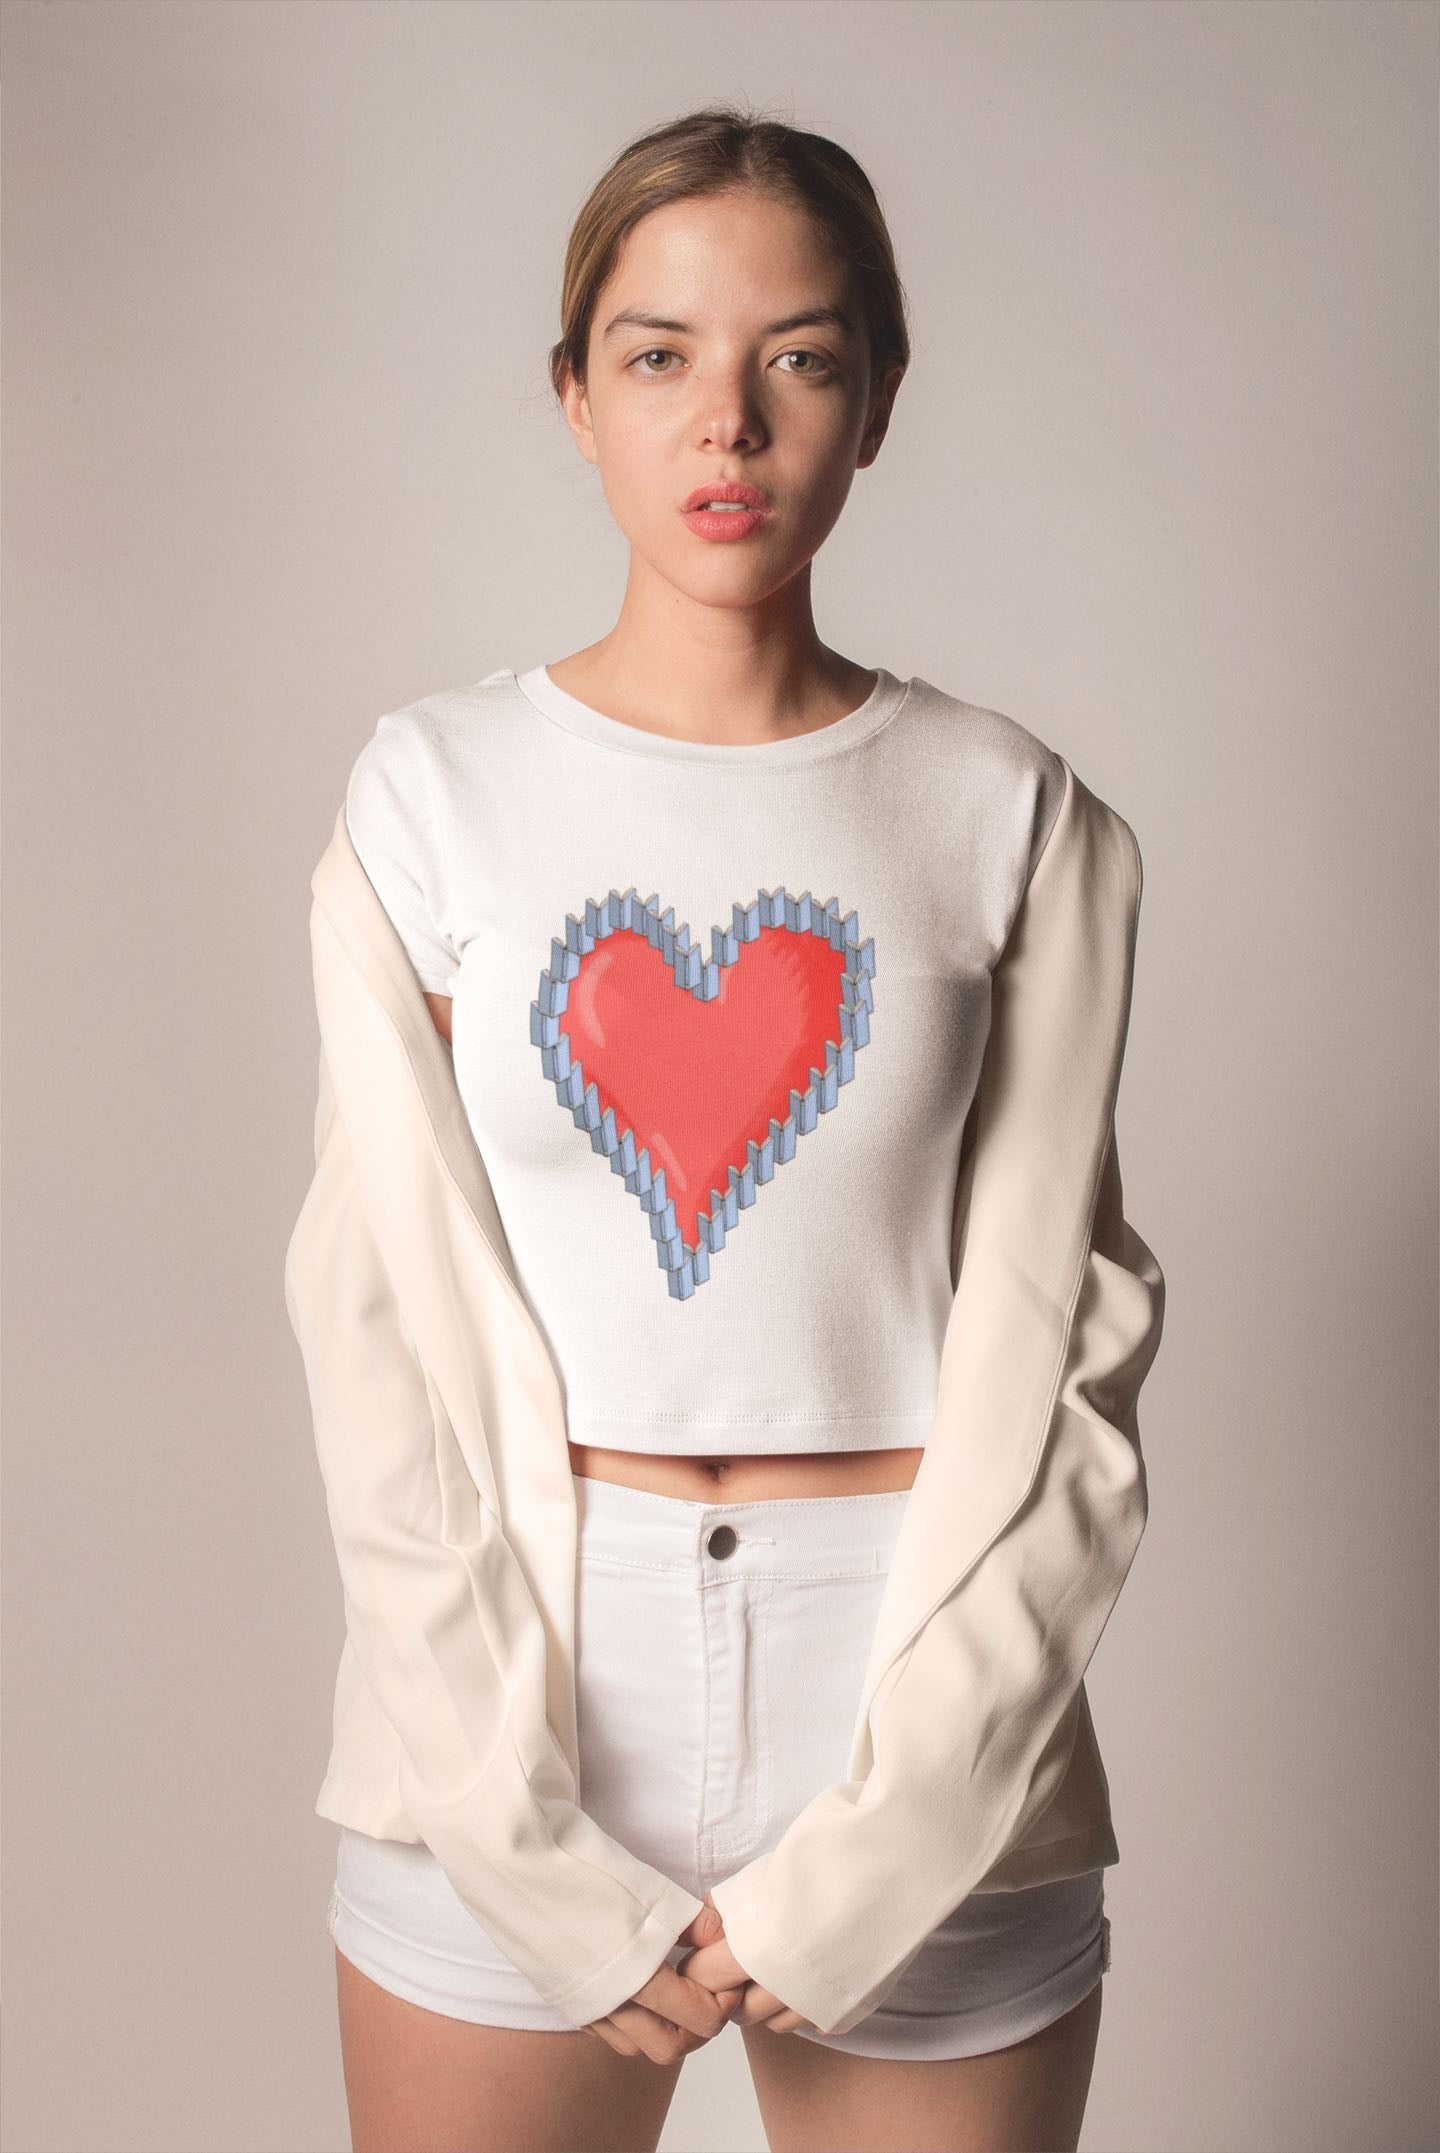 book lover crop top with heart